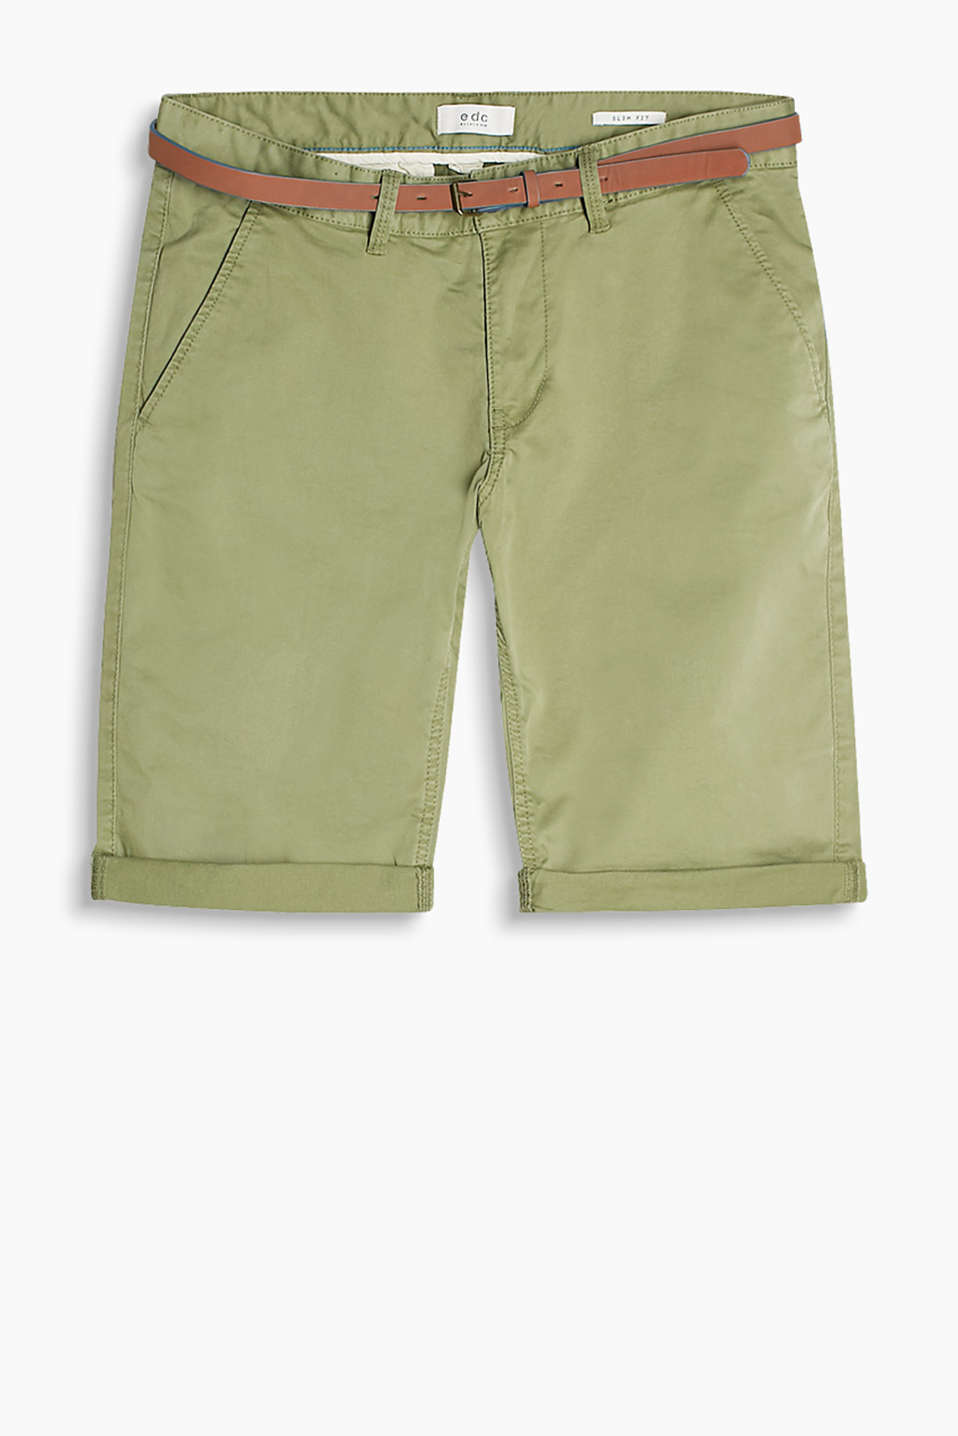 Chino bermudas in cotton twill with added elastane with a narrow faux leather belt